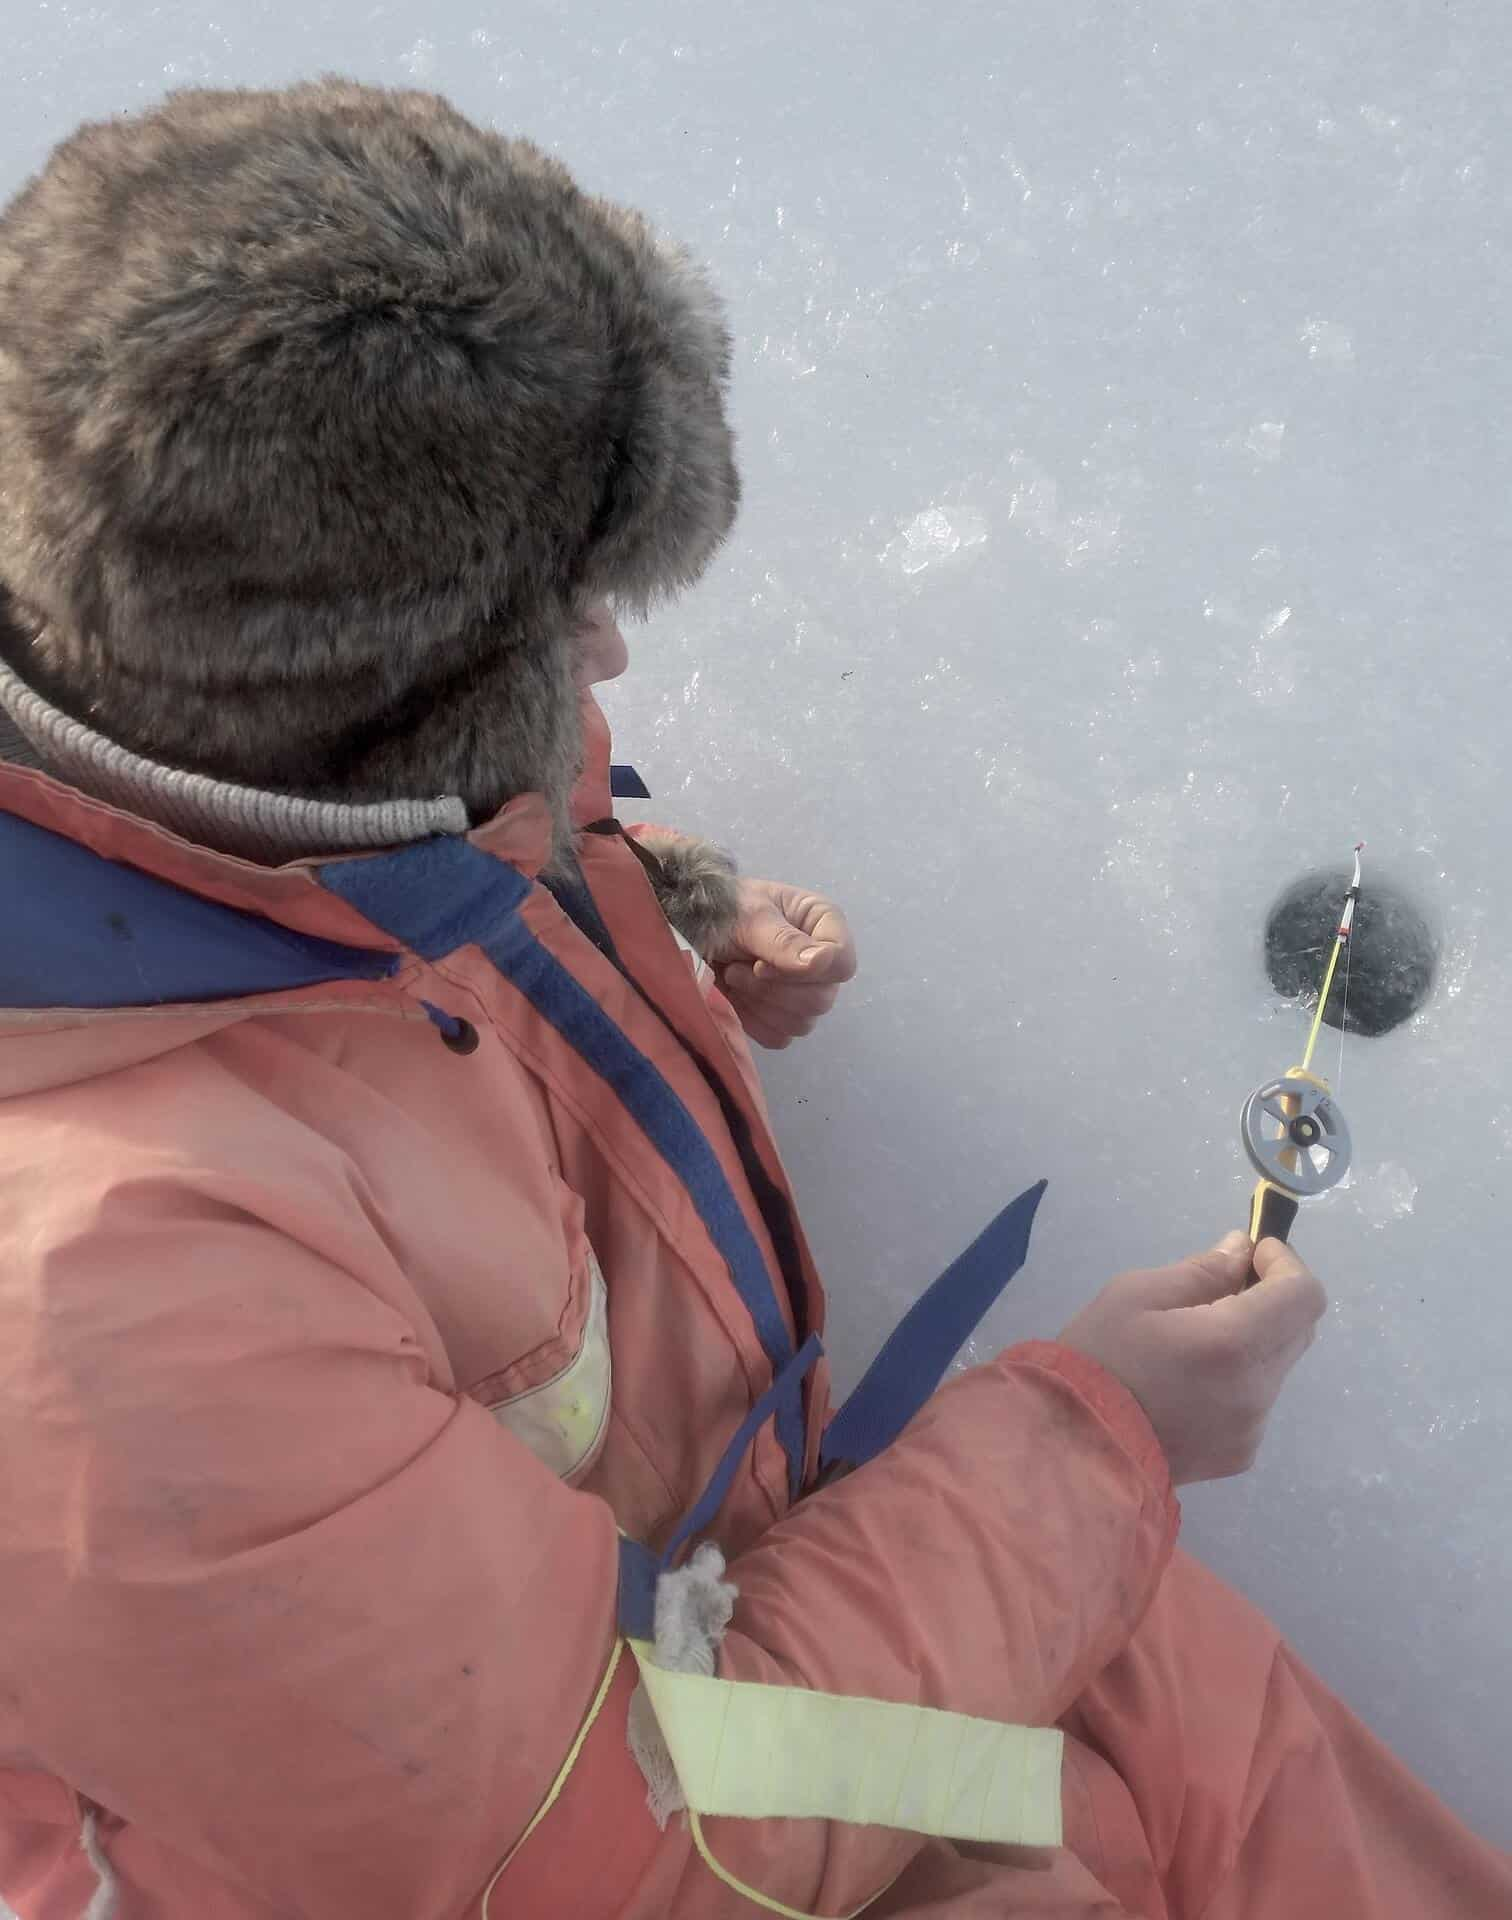 Person ice fishing on a frozen lake holding a rod with one of the best ice fishing reel